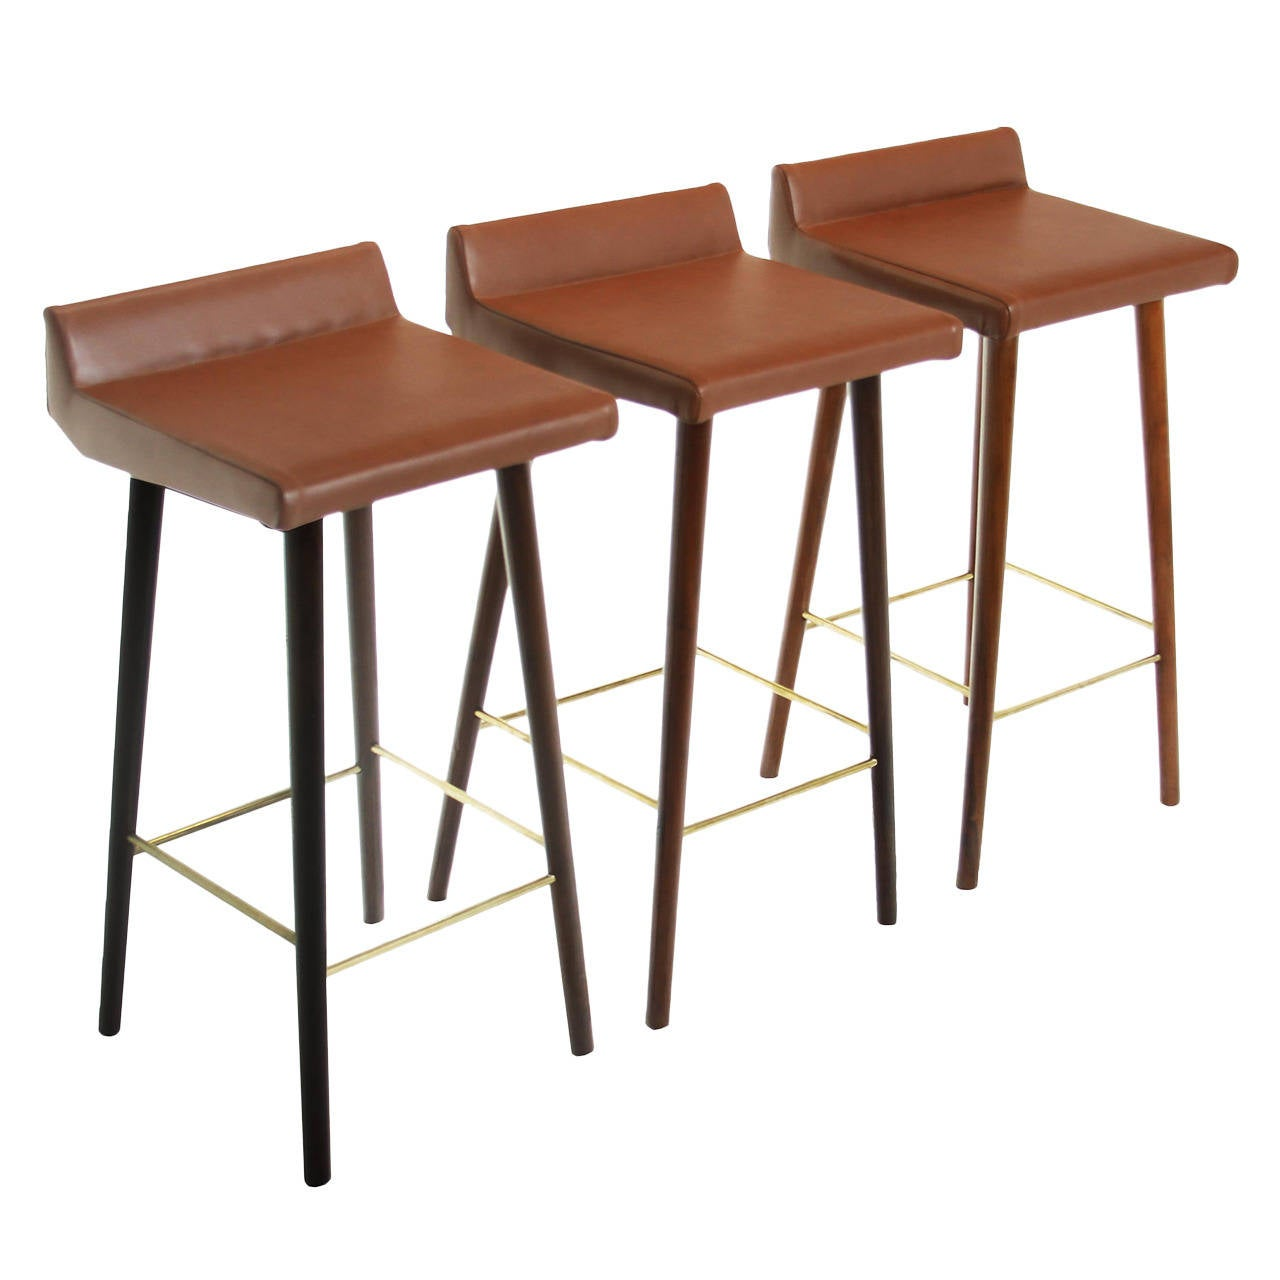 set of three wood leather and brass bar stools by cimo from brazil at 1stdibs. Black Bedroom Furniture Sets. Home Design Ideas